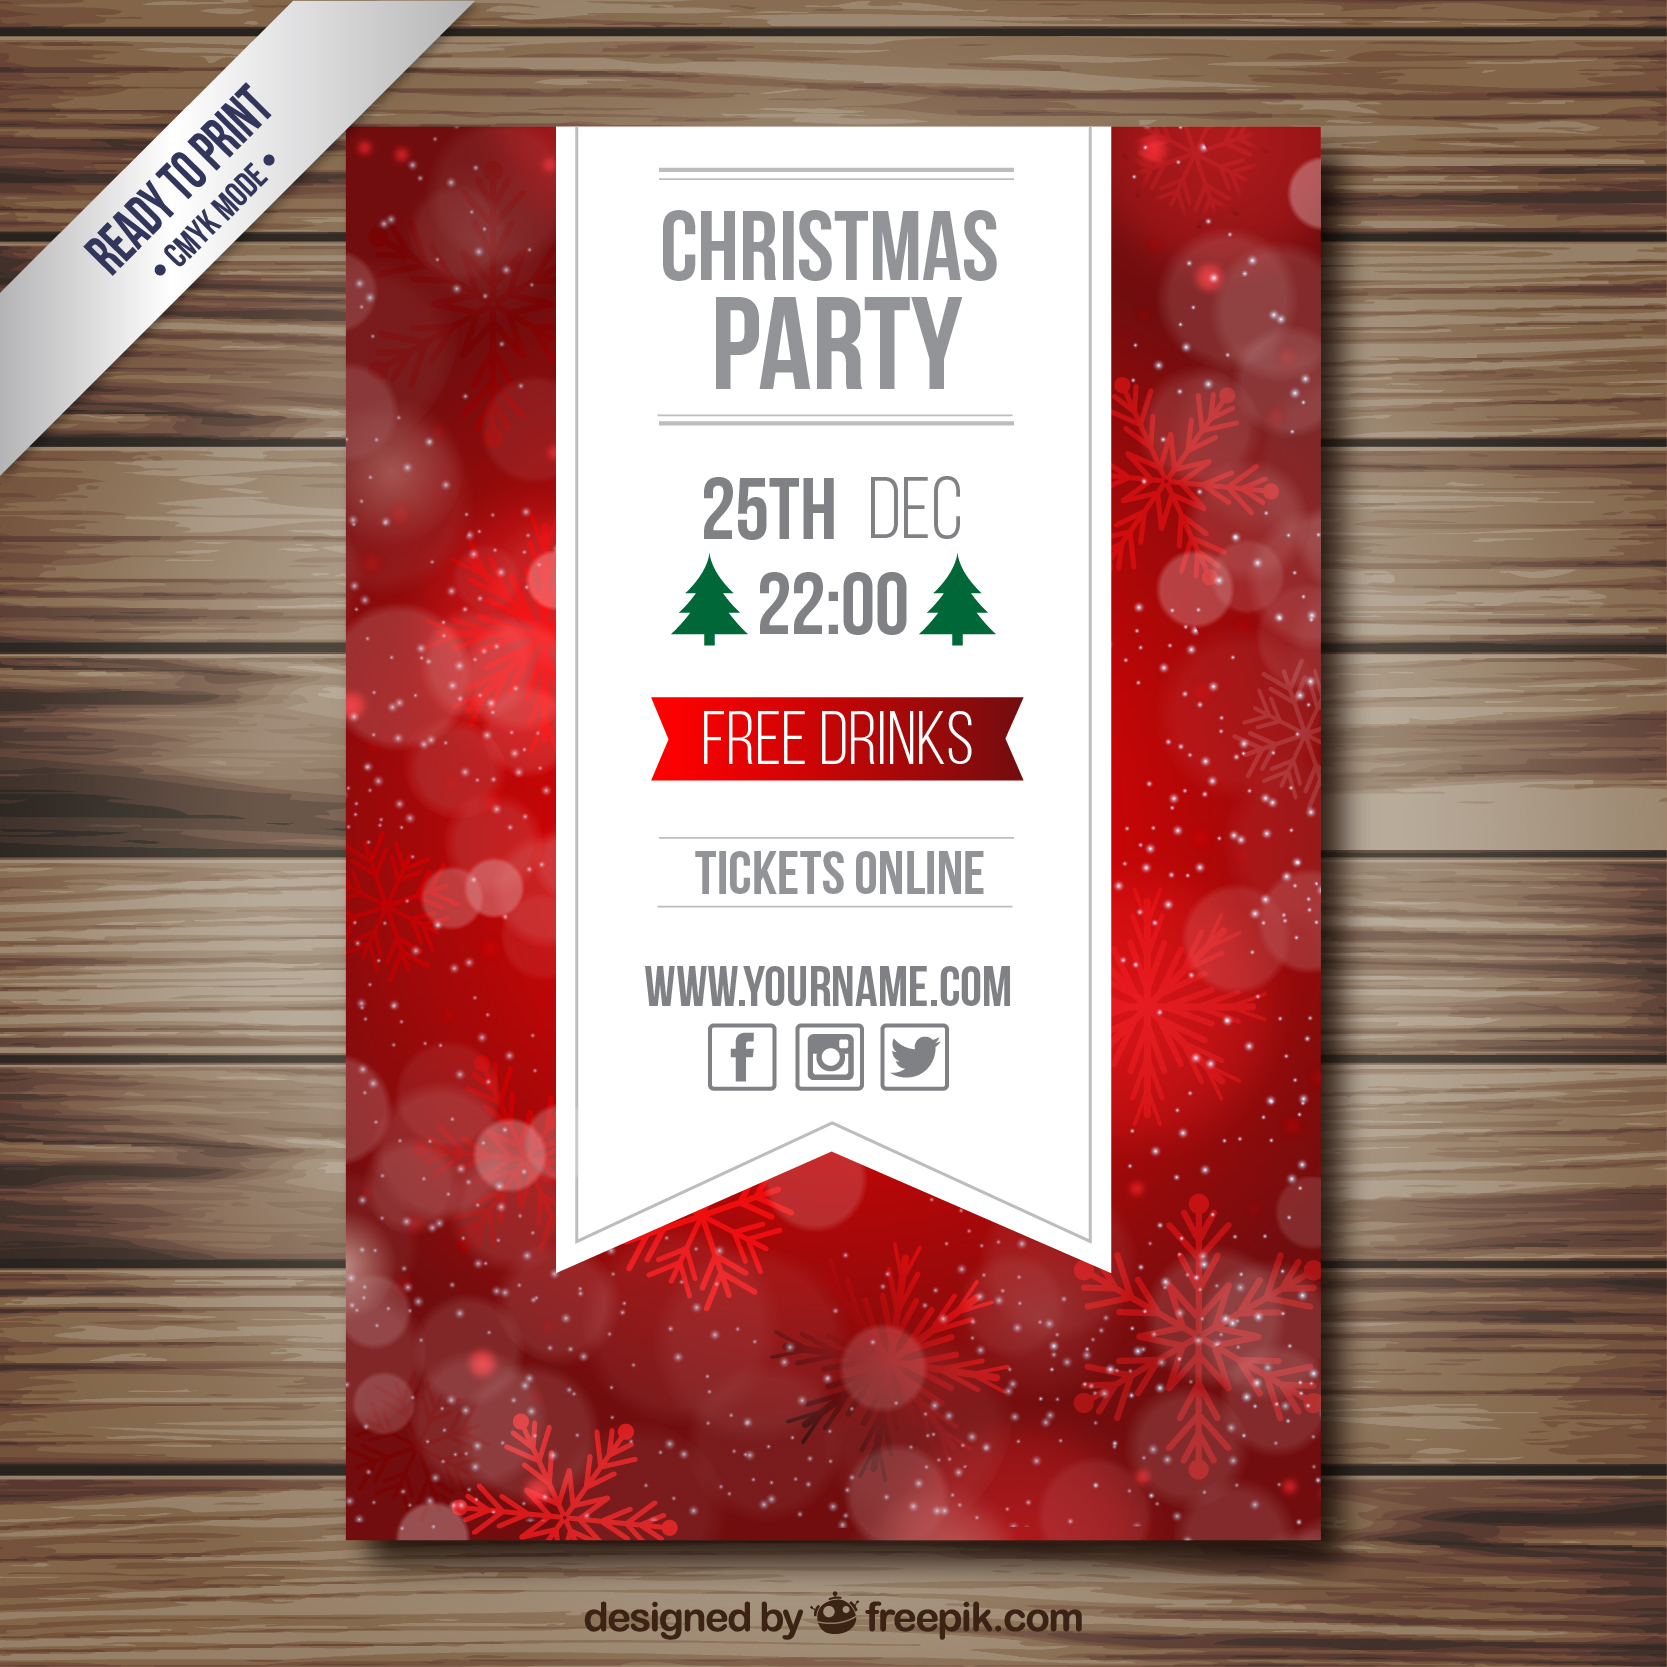 xmas bies best hi quality christmas graphic vectors  red christmas party flyer